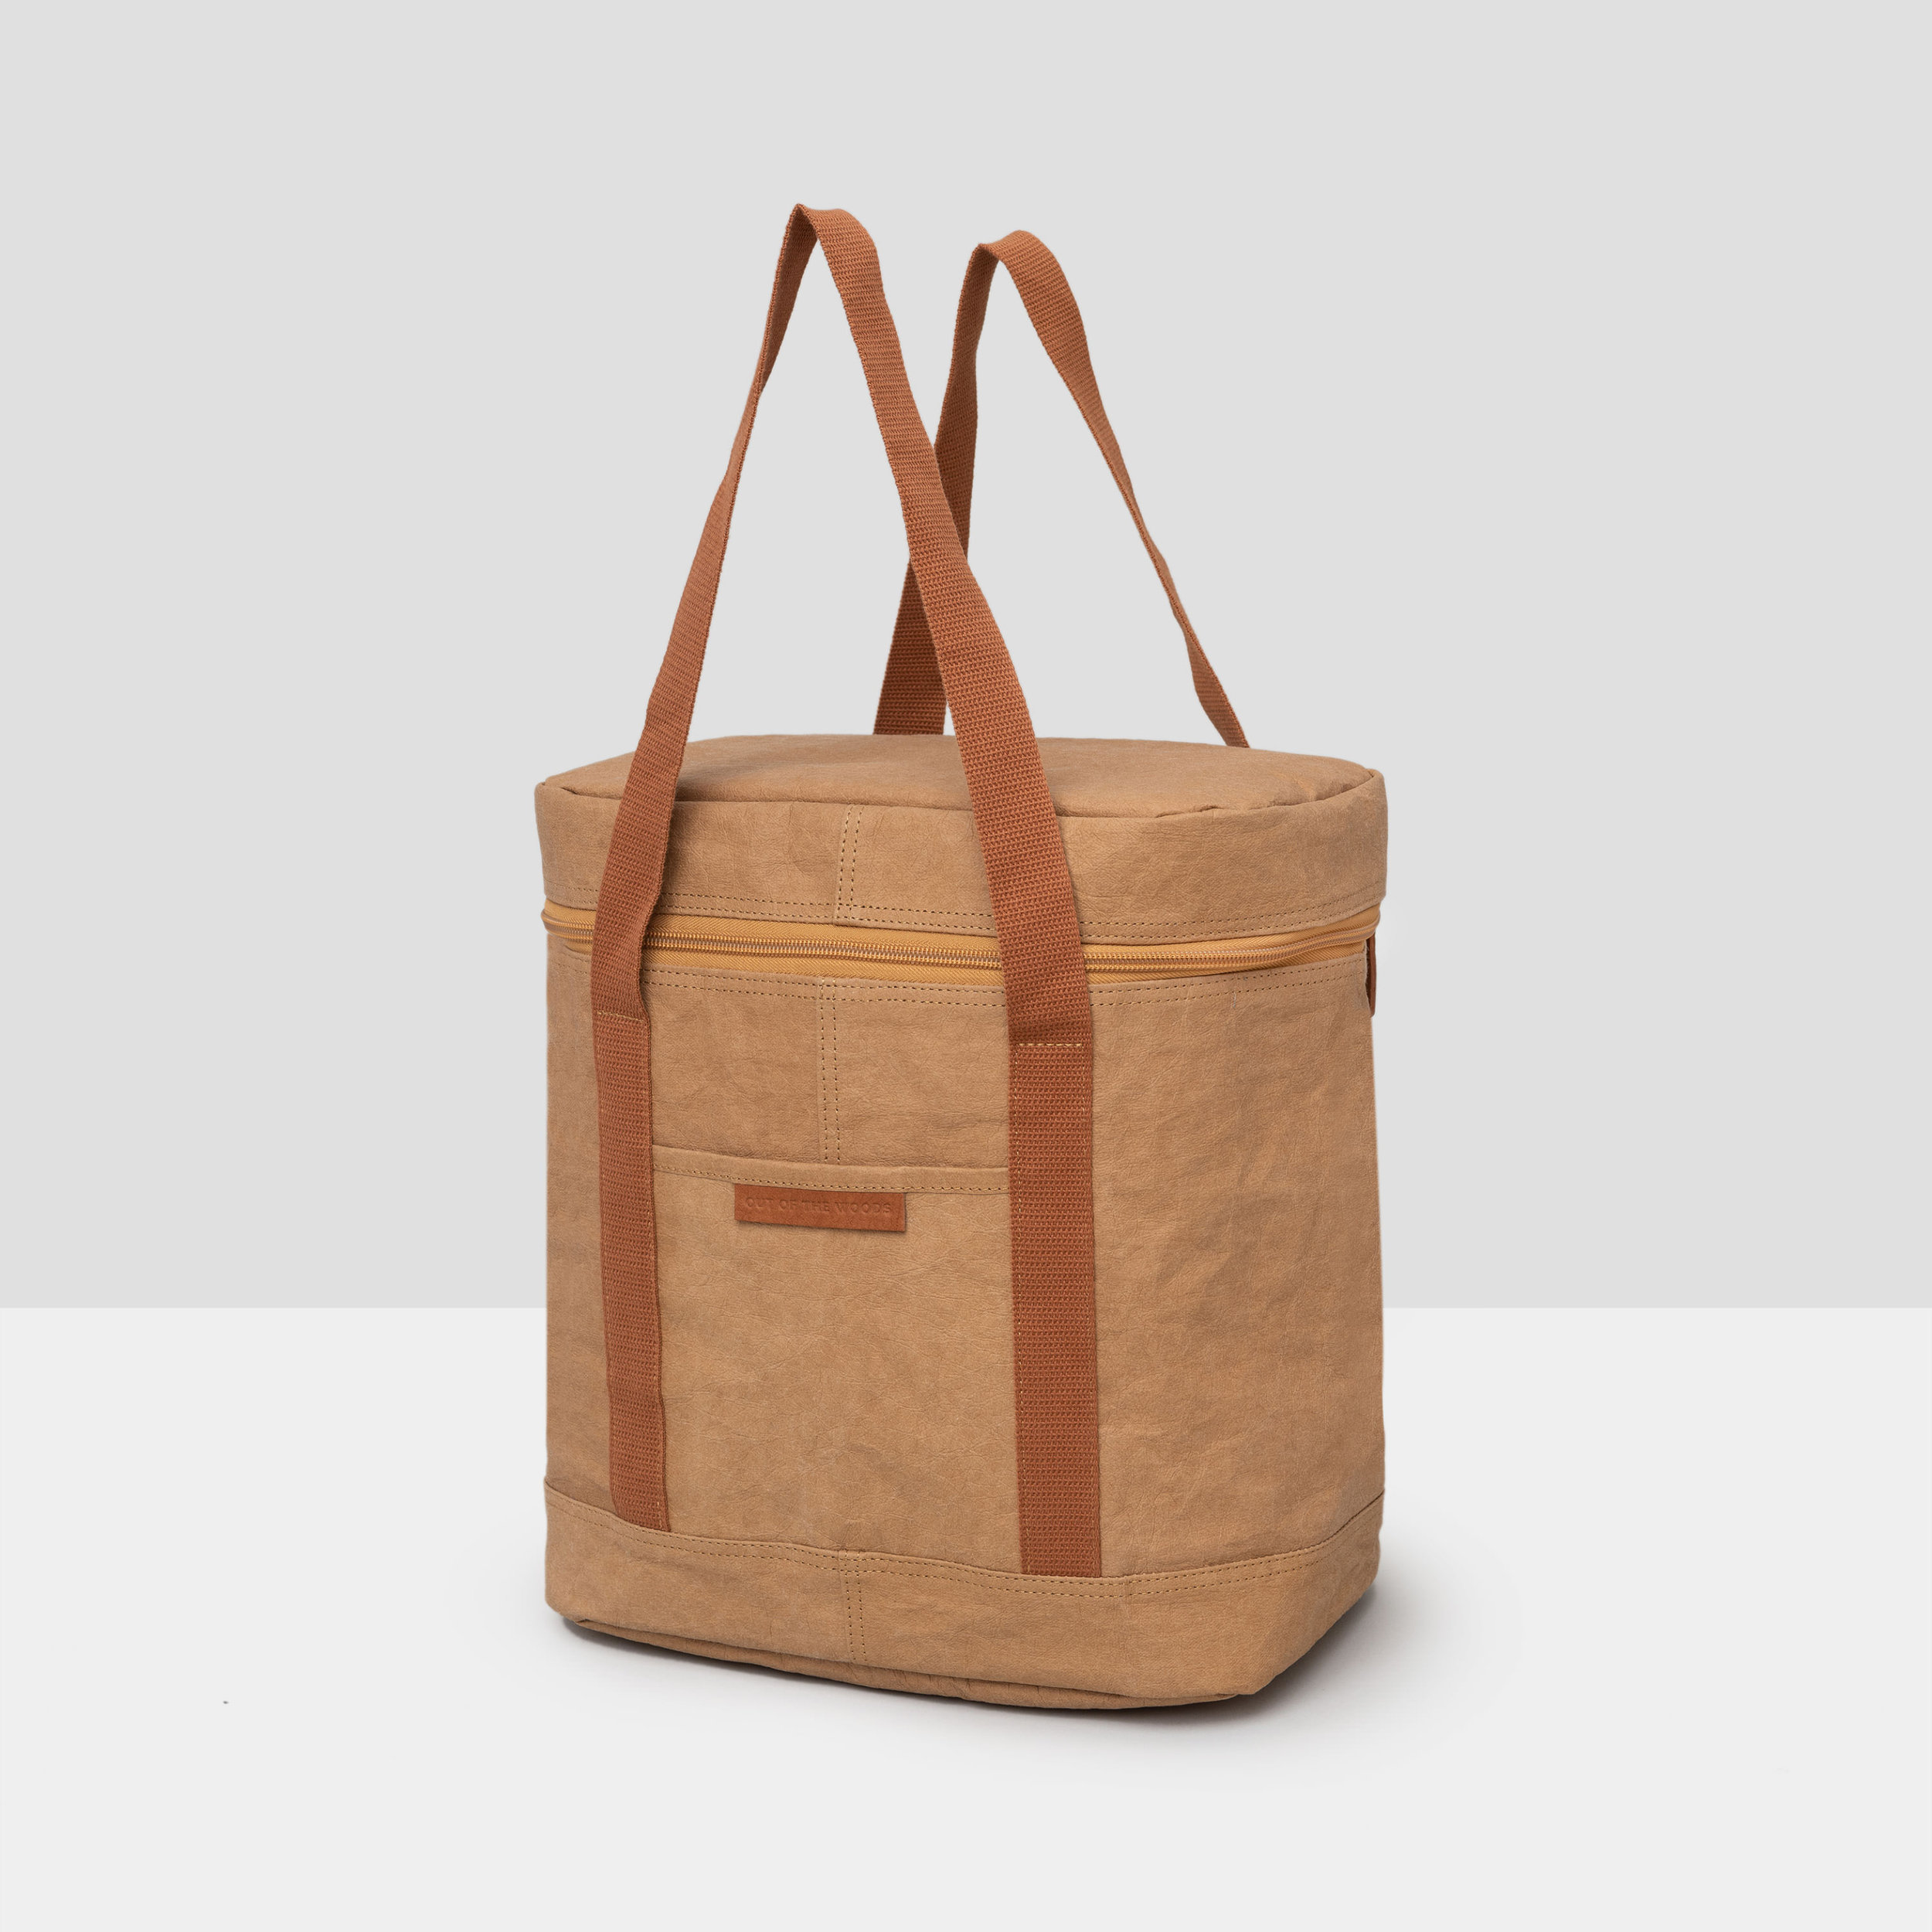 Walrus Cooler in brown Supernatural Paper with complimentary brown handles